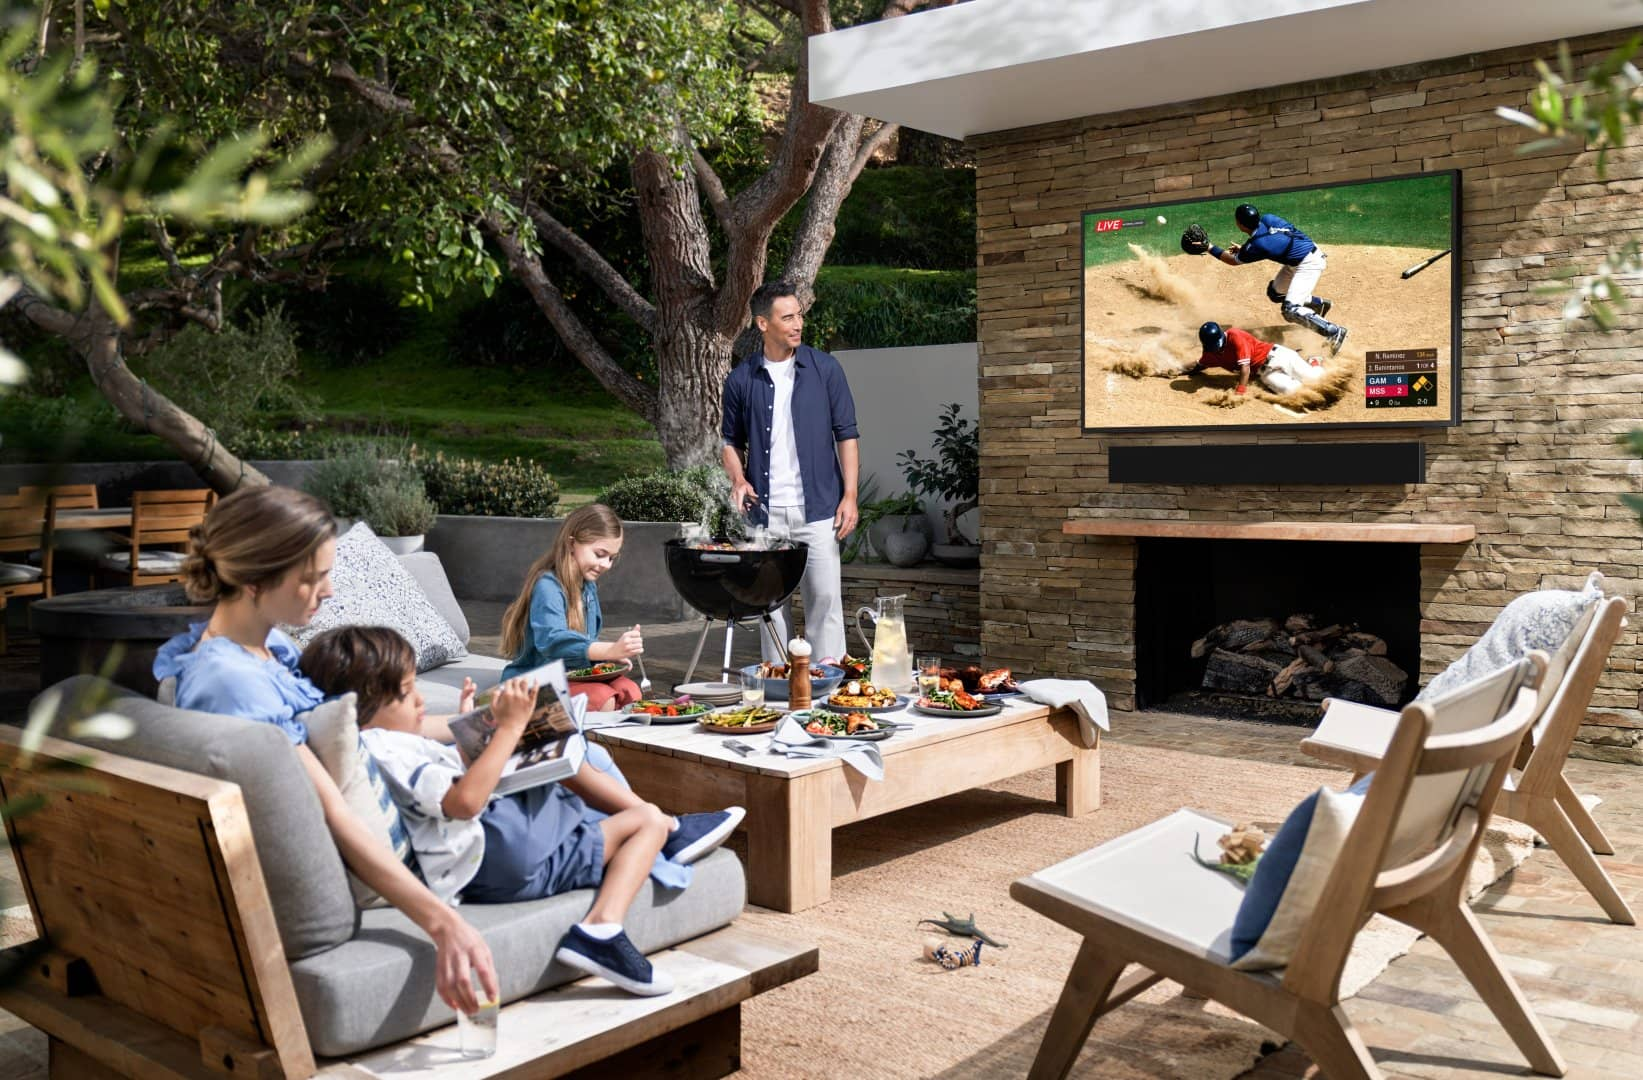 Samsung Terrace TV obr6